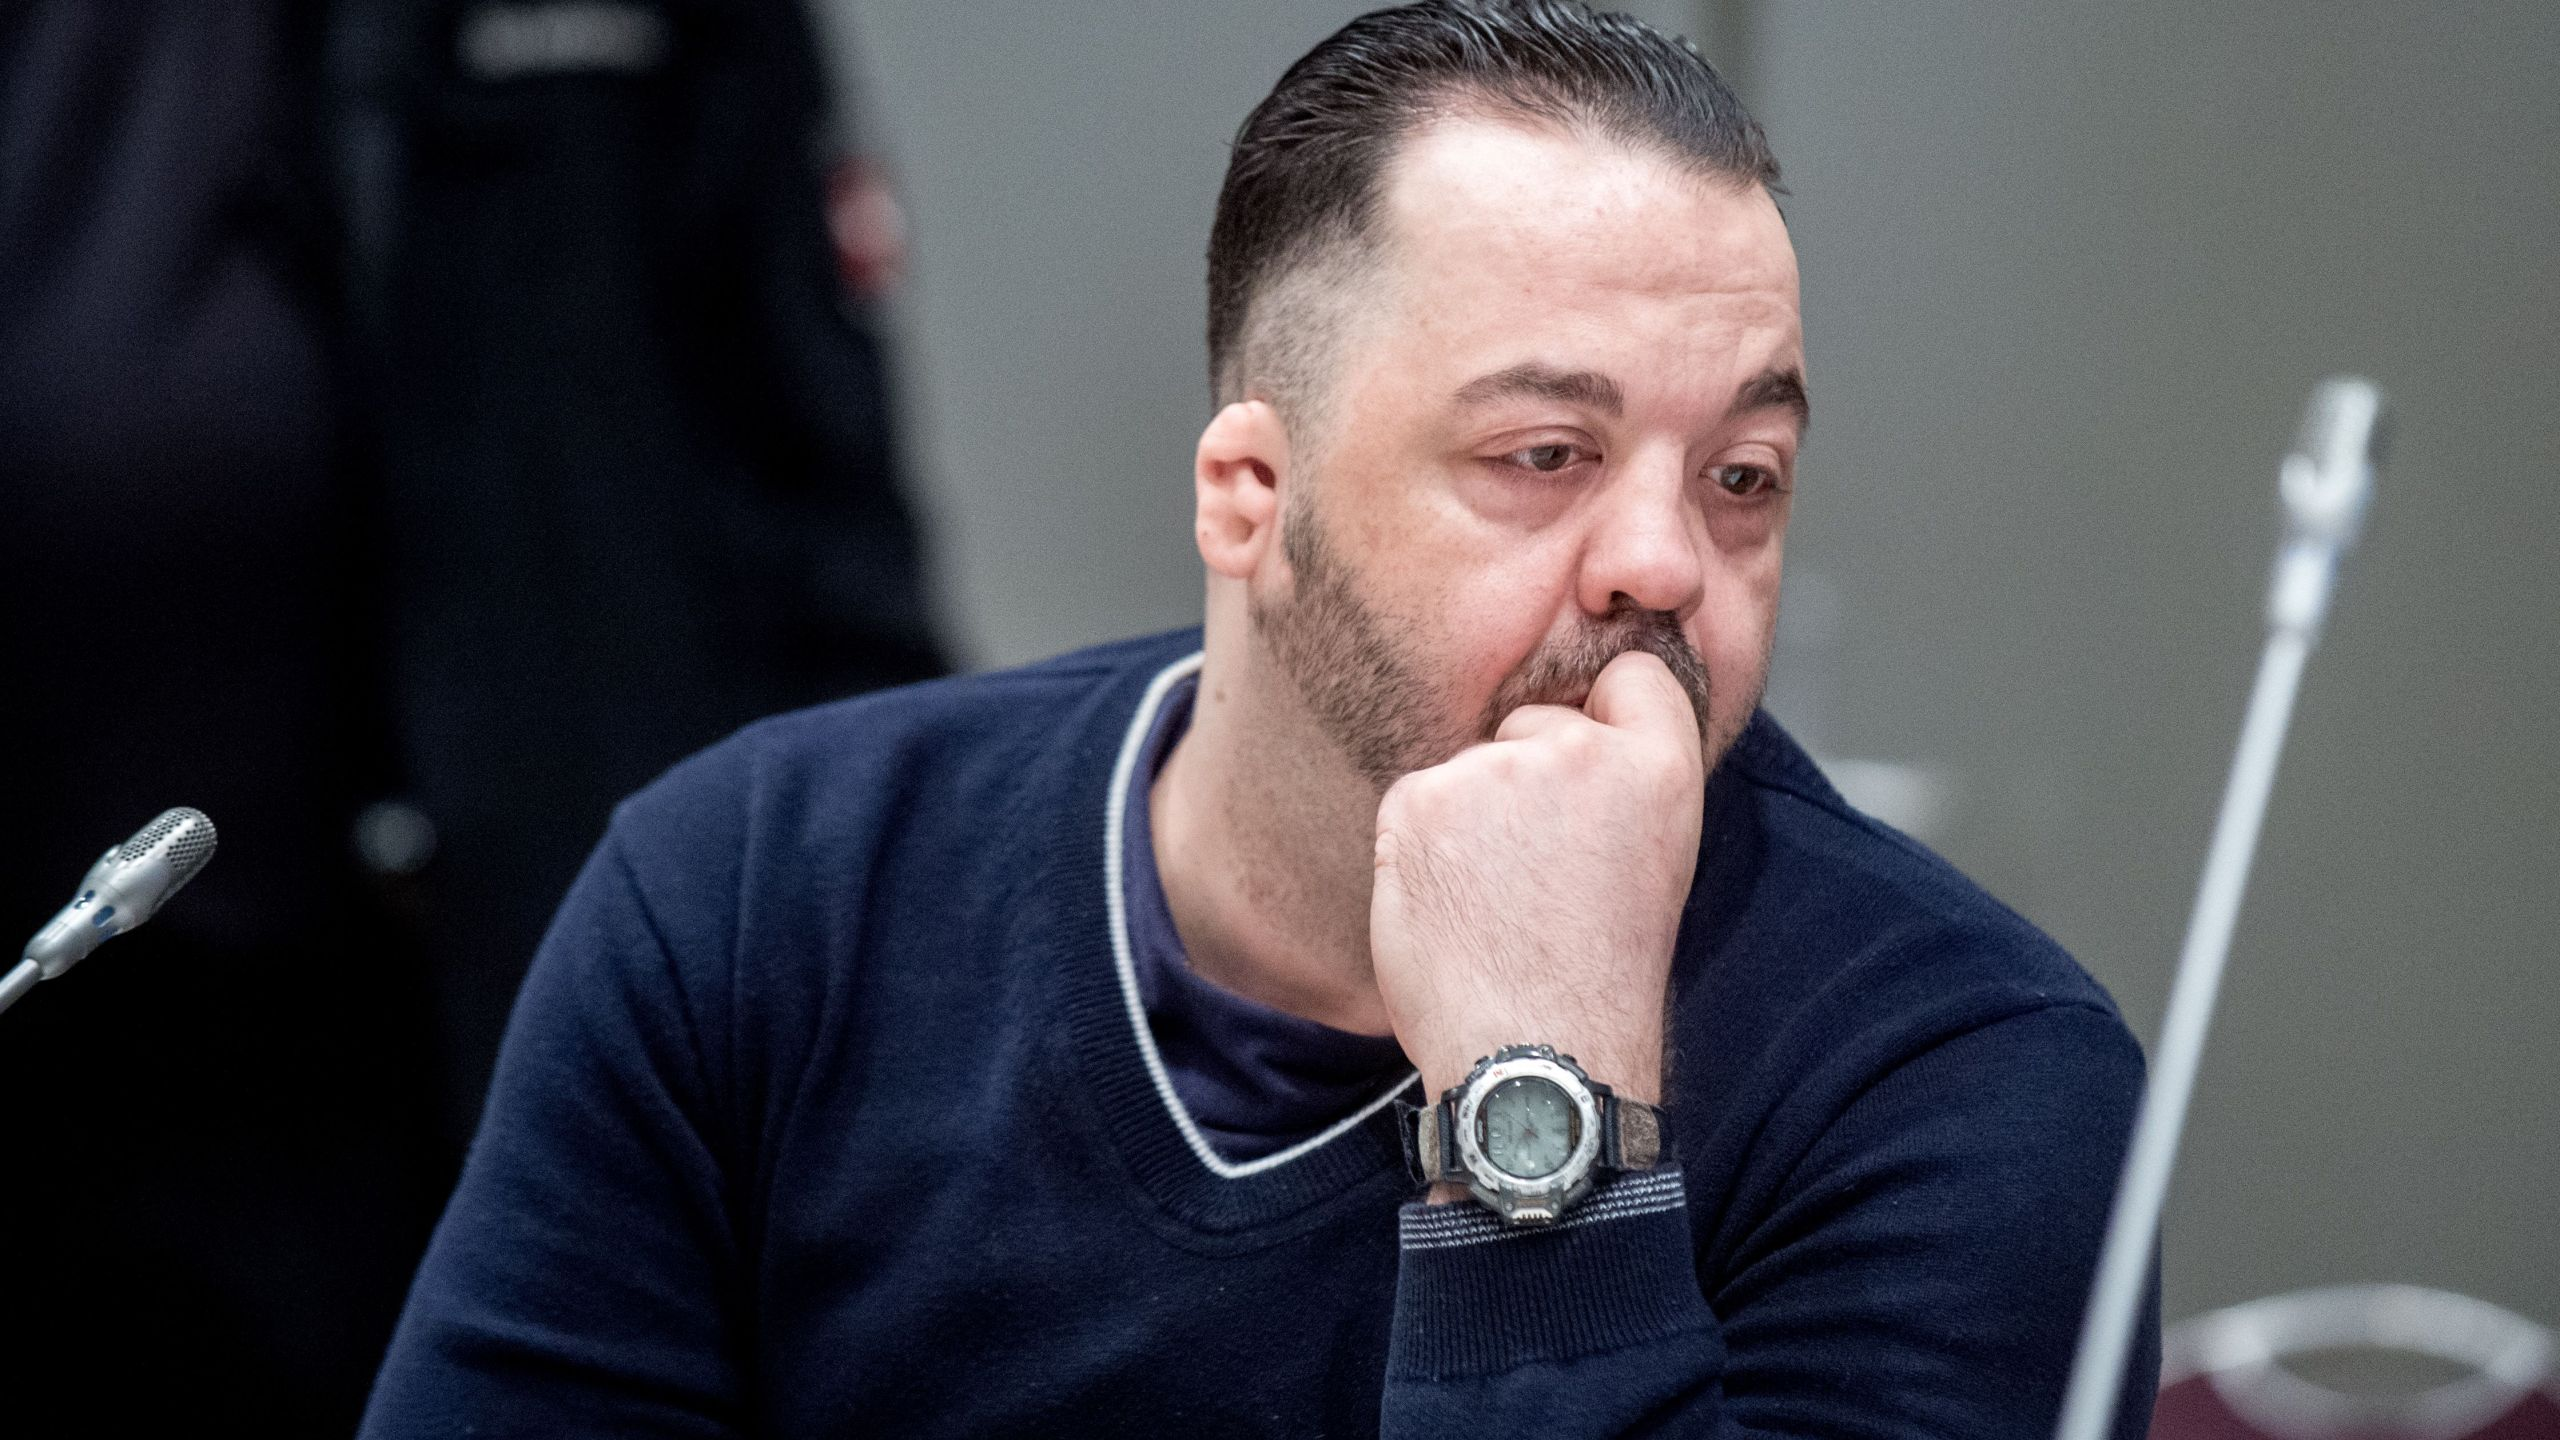 Former nurse Niels Hoegel, accused of killing more than 100 patients in his care, waits at court for his verdict at court in Oldenburg, northern Germany, on June 6, 2019. (Credit: HAUKE-CHRISTIAN DITTRICH/AFP/Getty Images)